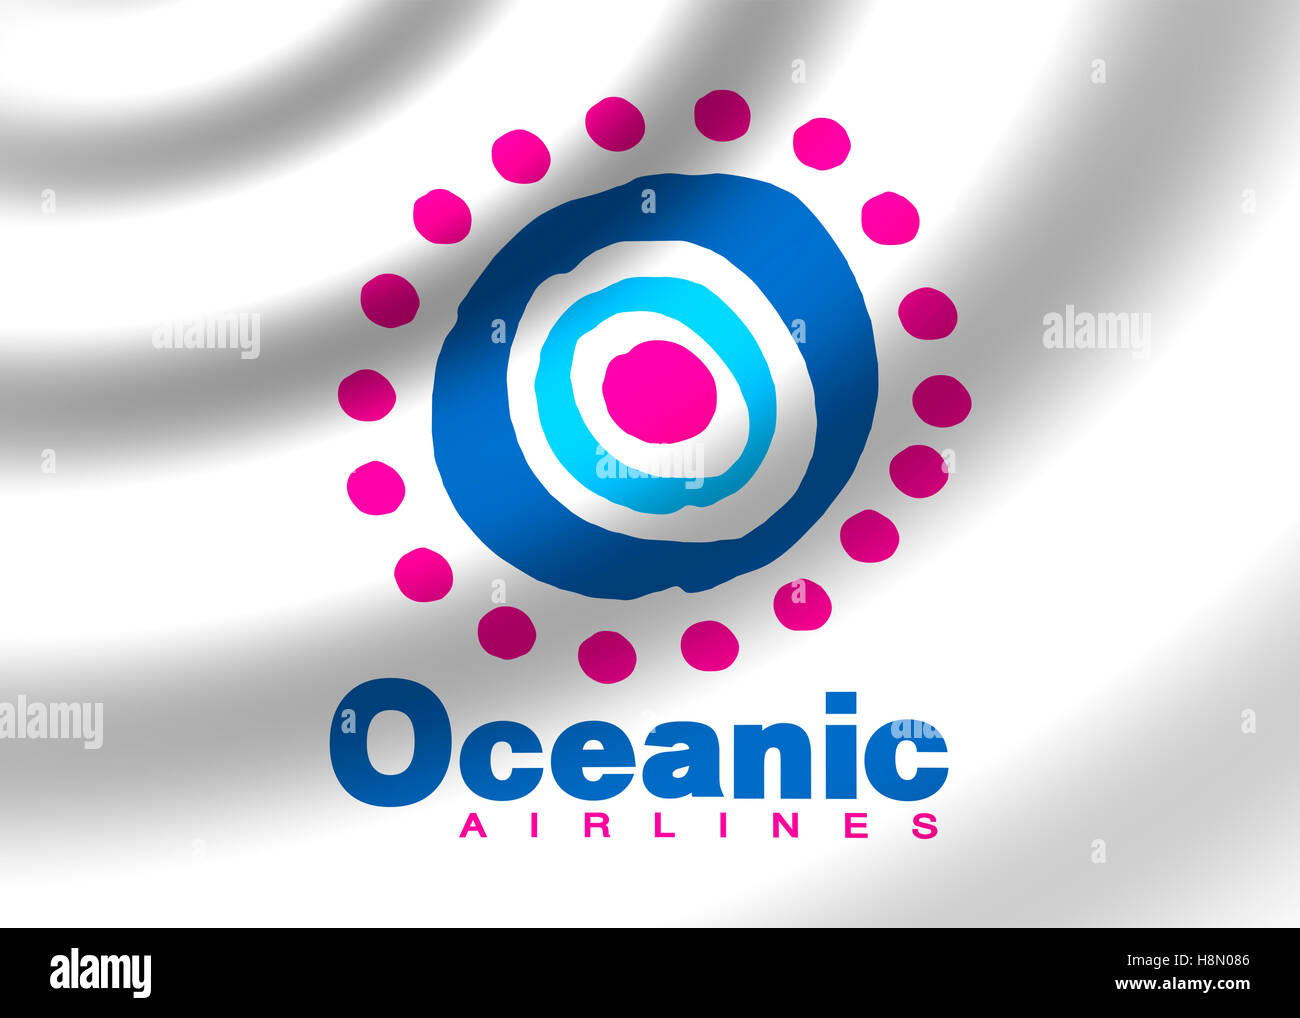 Oceanic Air Airlines logo - Stock Image